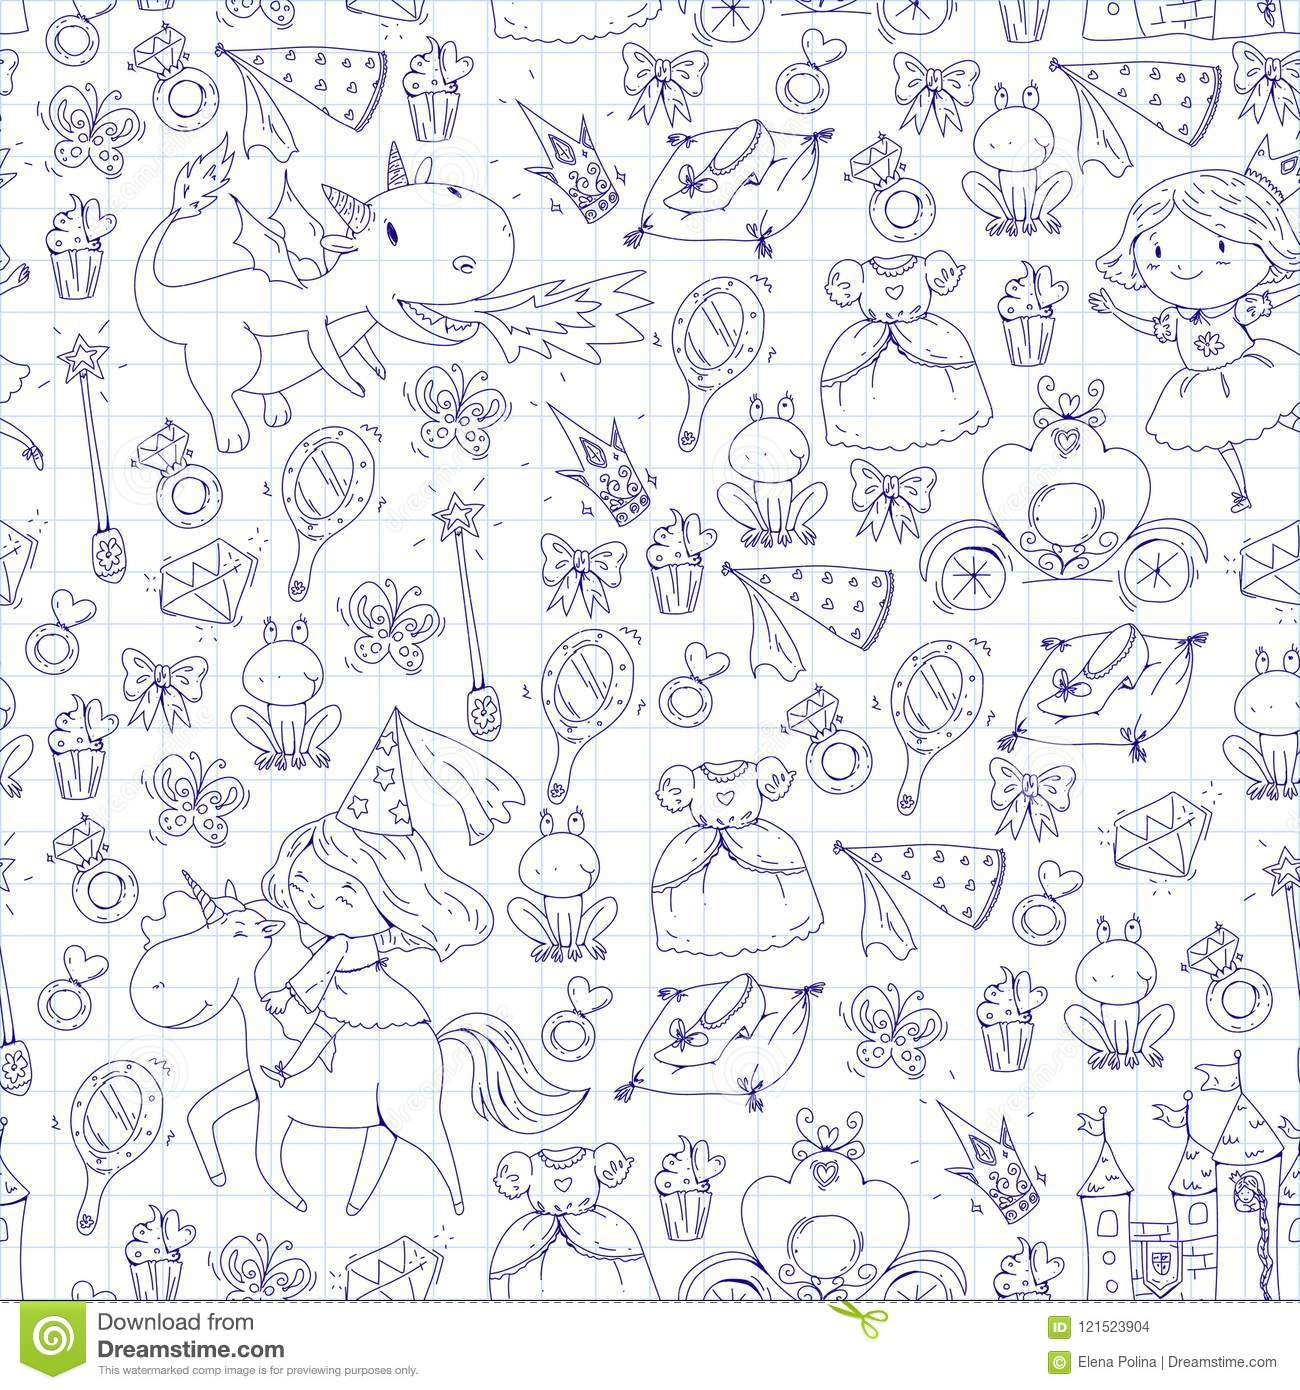 coloring page book cute little princess unicorn dragon castle girl dress magic wand fairy tale icons crown frog